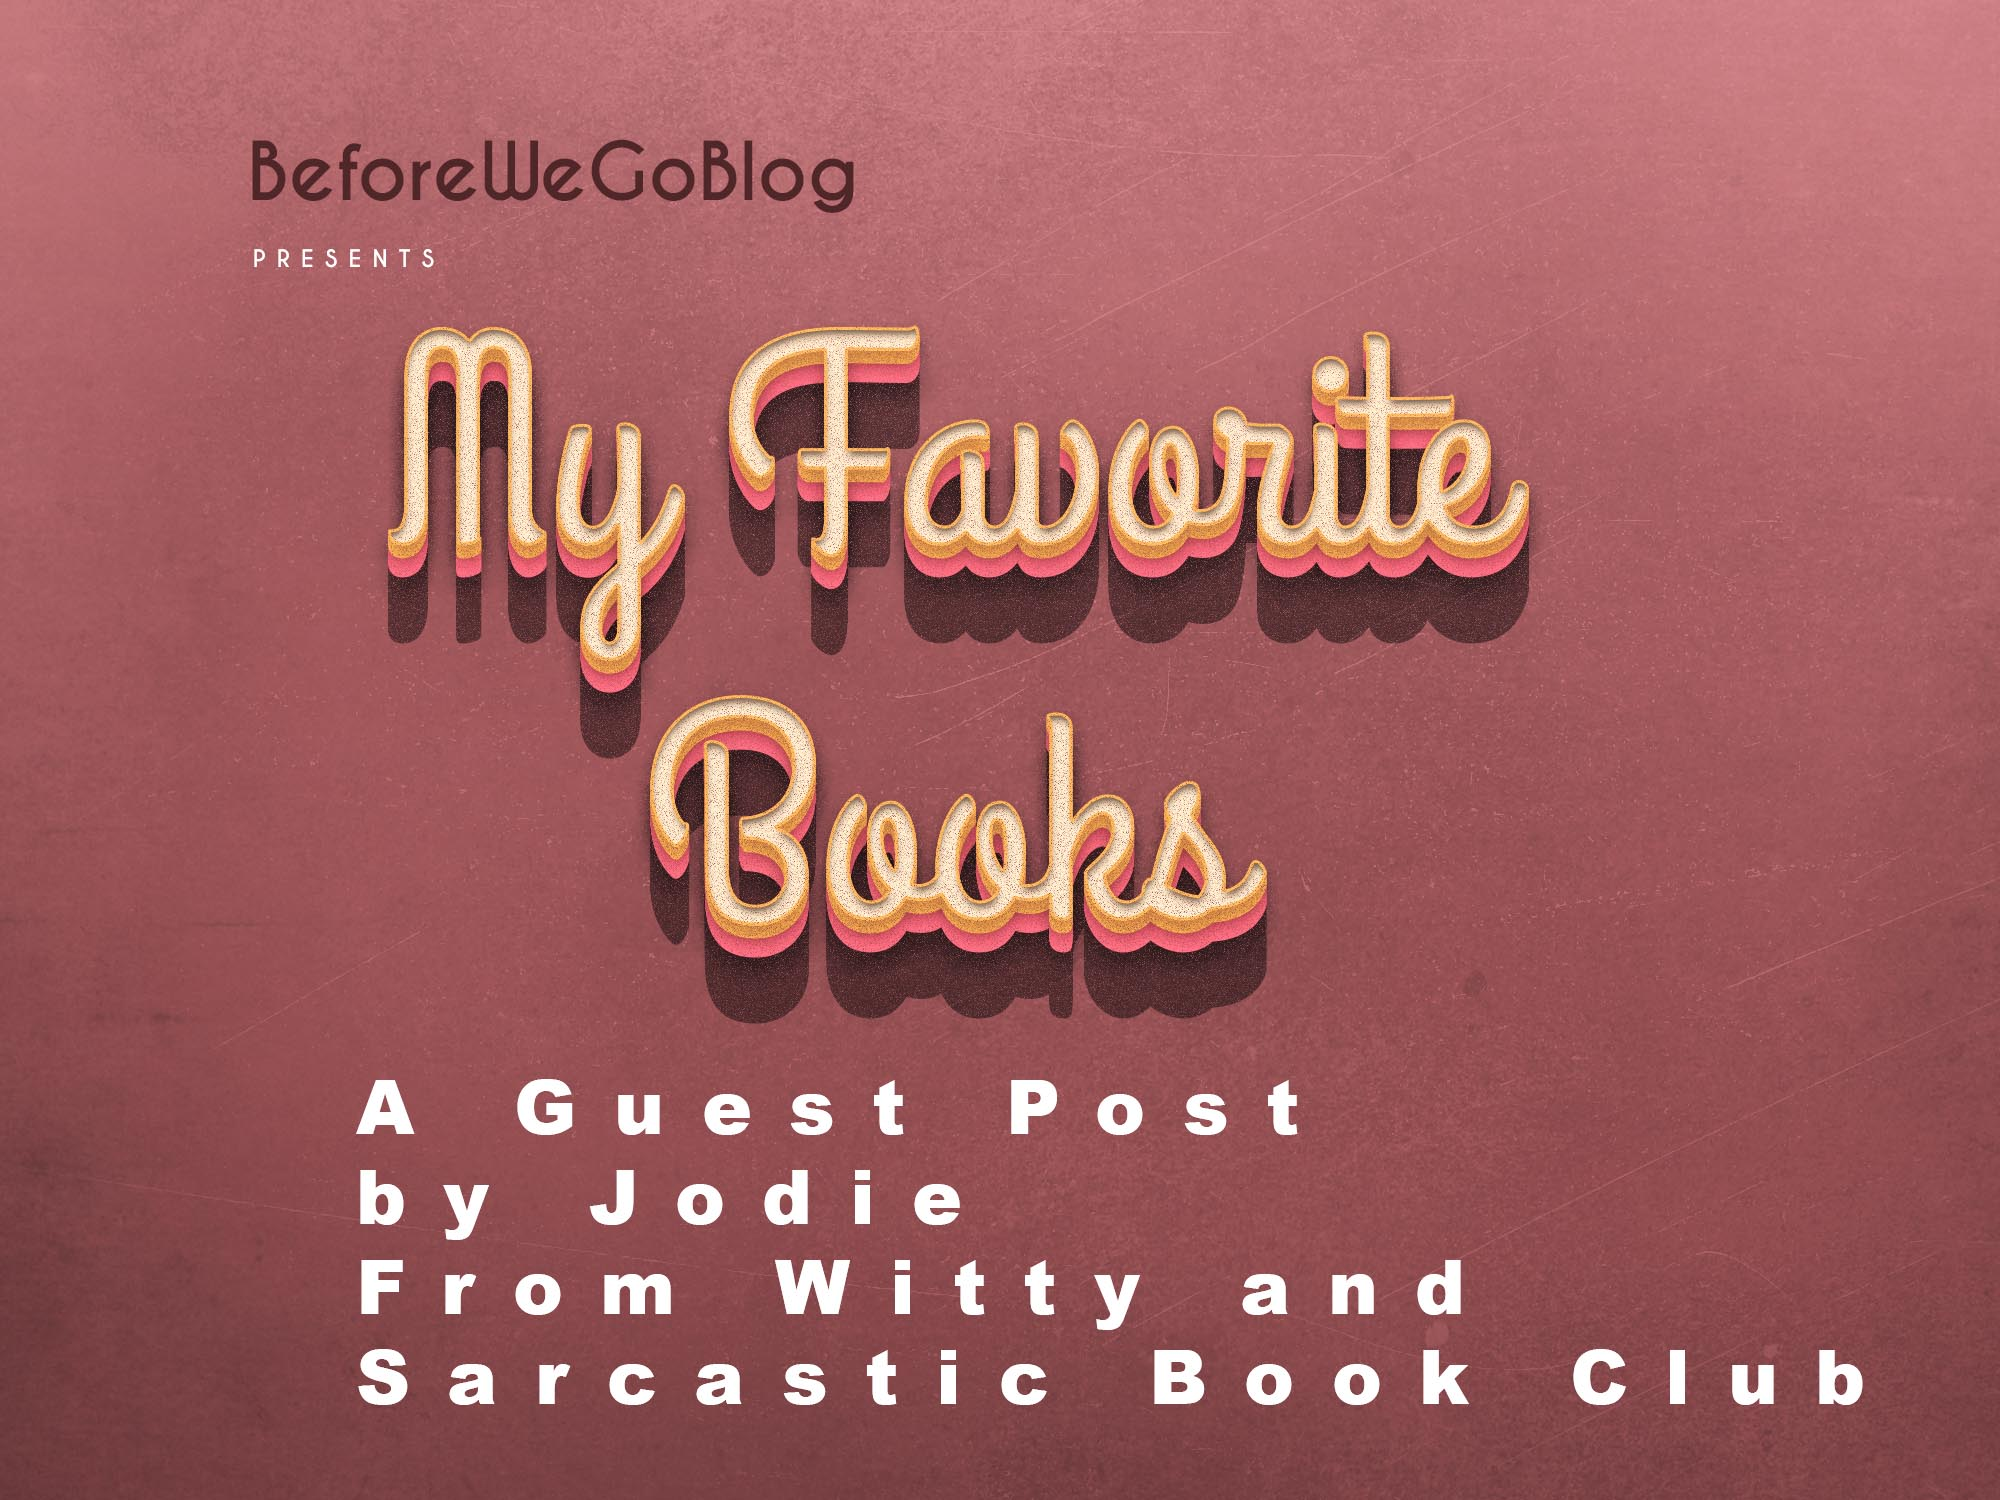 Jodie from Witty & Sarcastic Book Club's Favorite Books